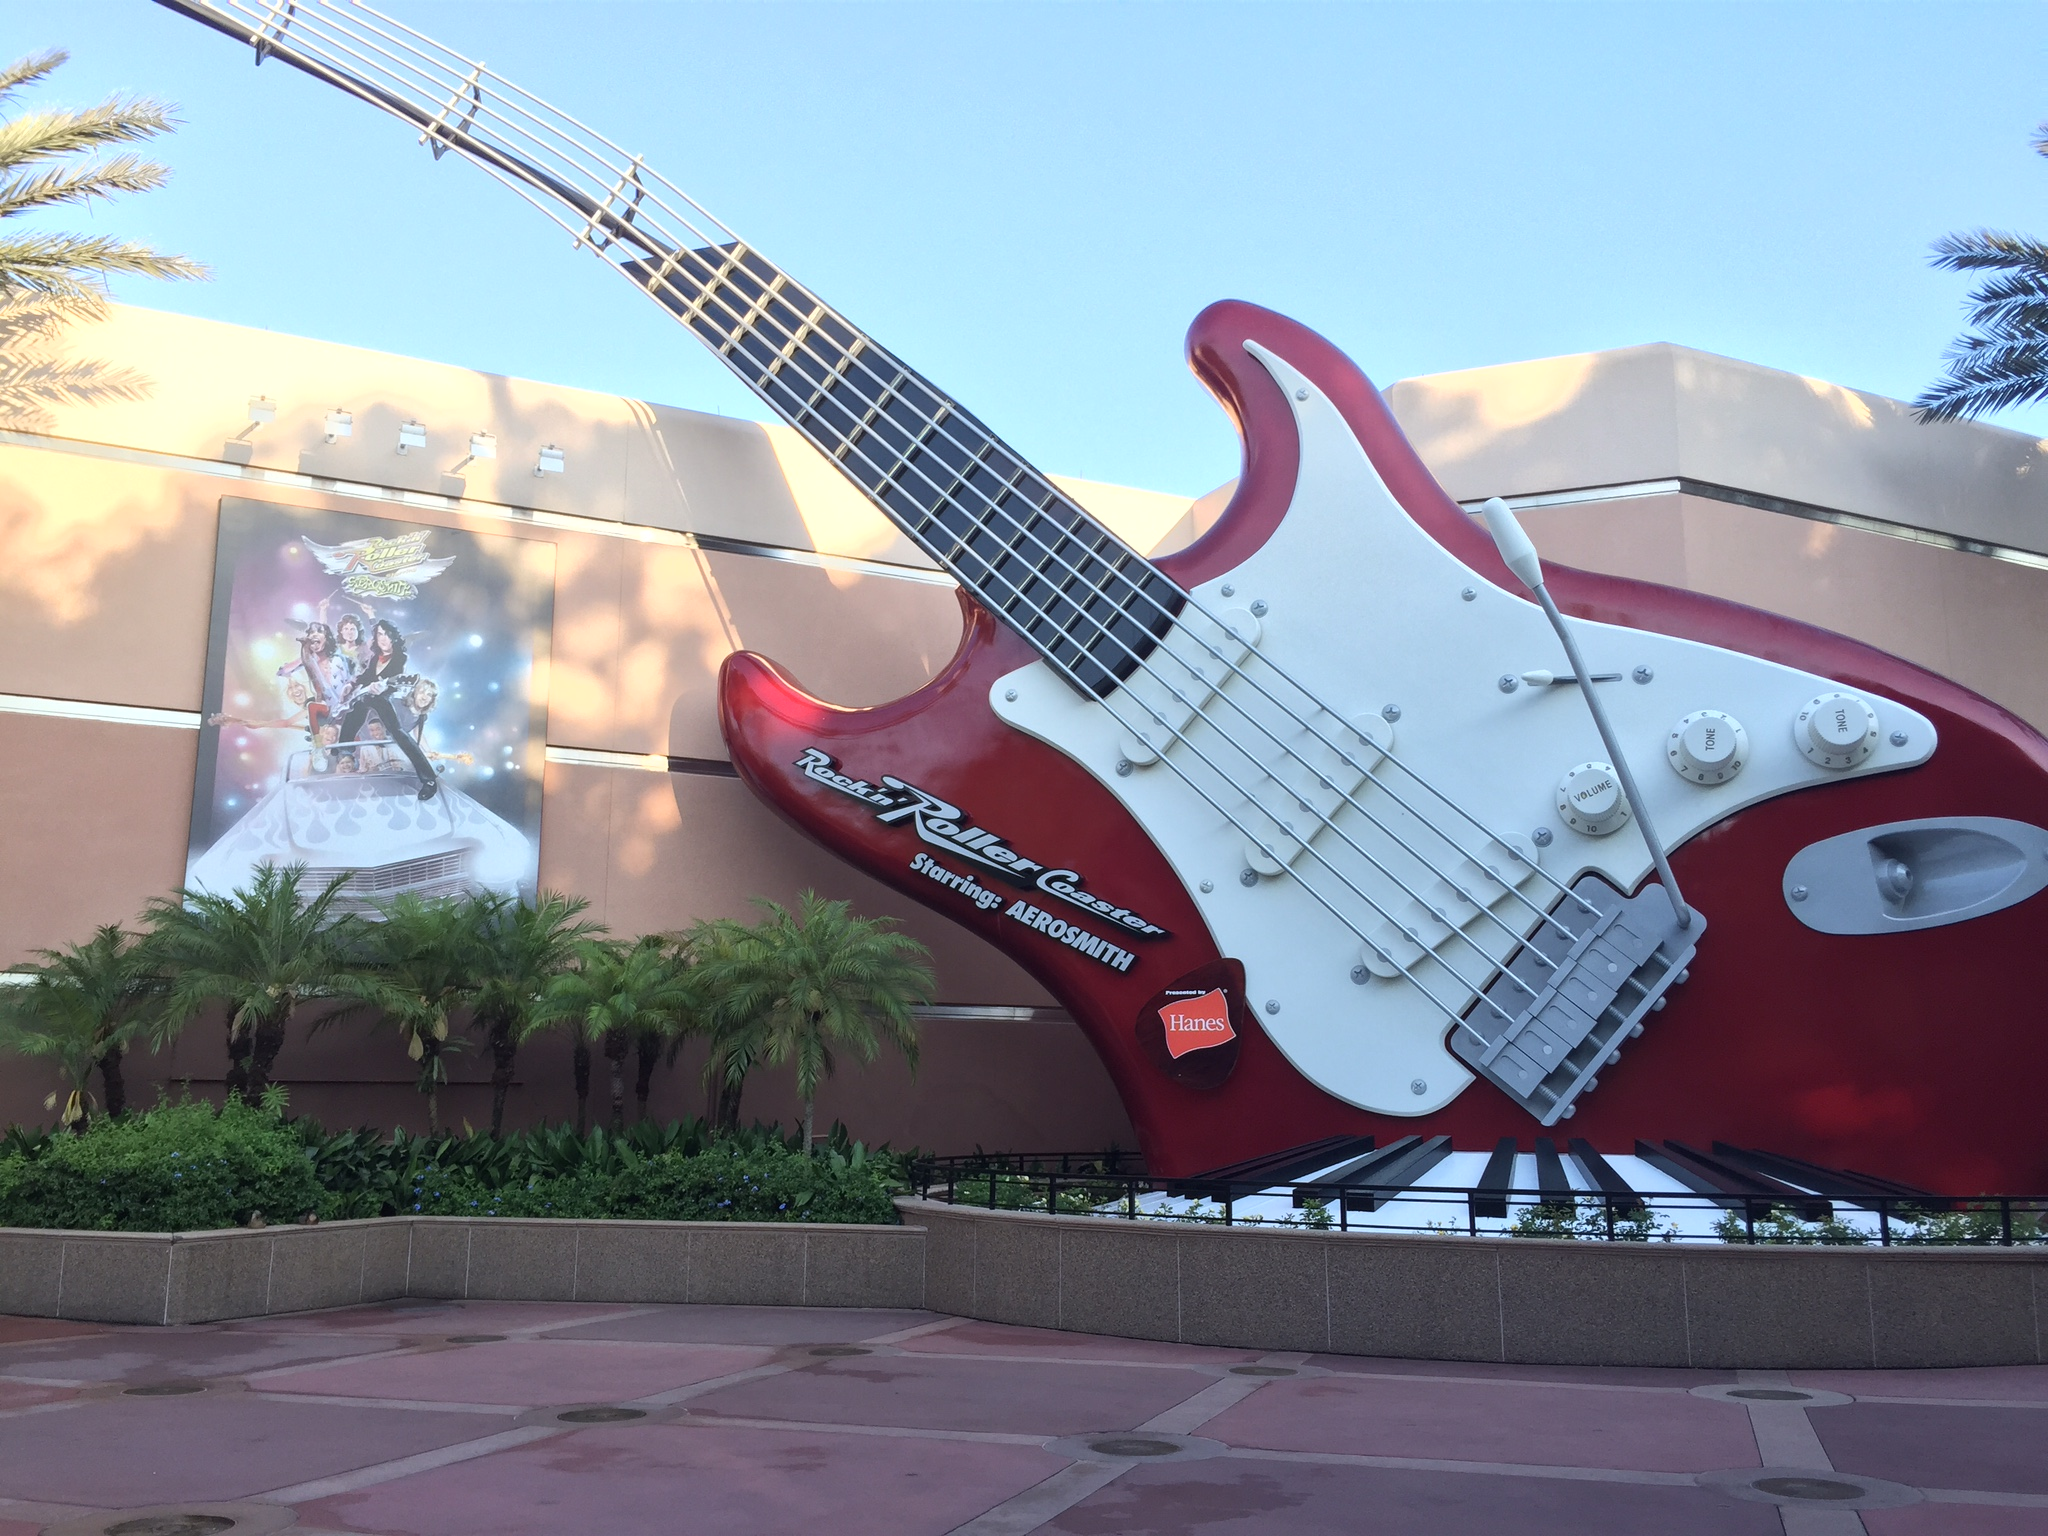 Giant guitar outside of Rock 'n' Roller Coaster Starring Aerosmith is a great photo backdrop